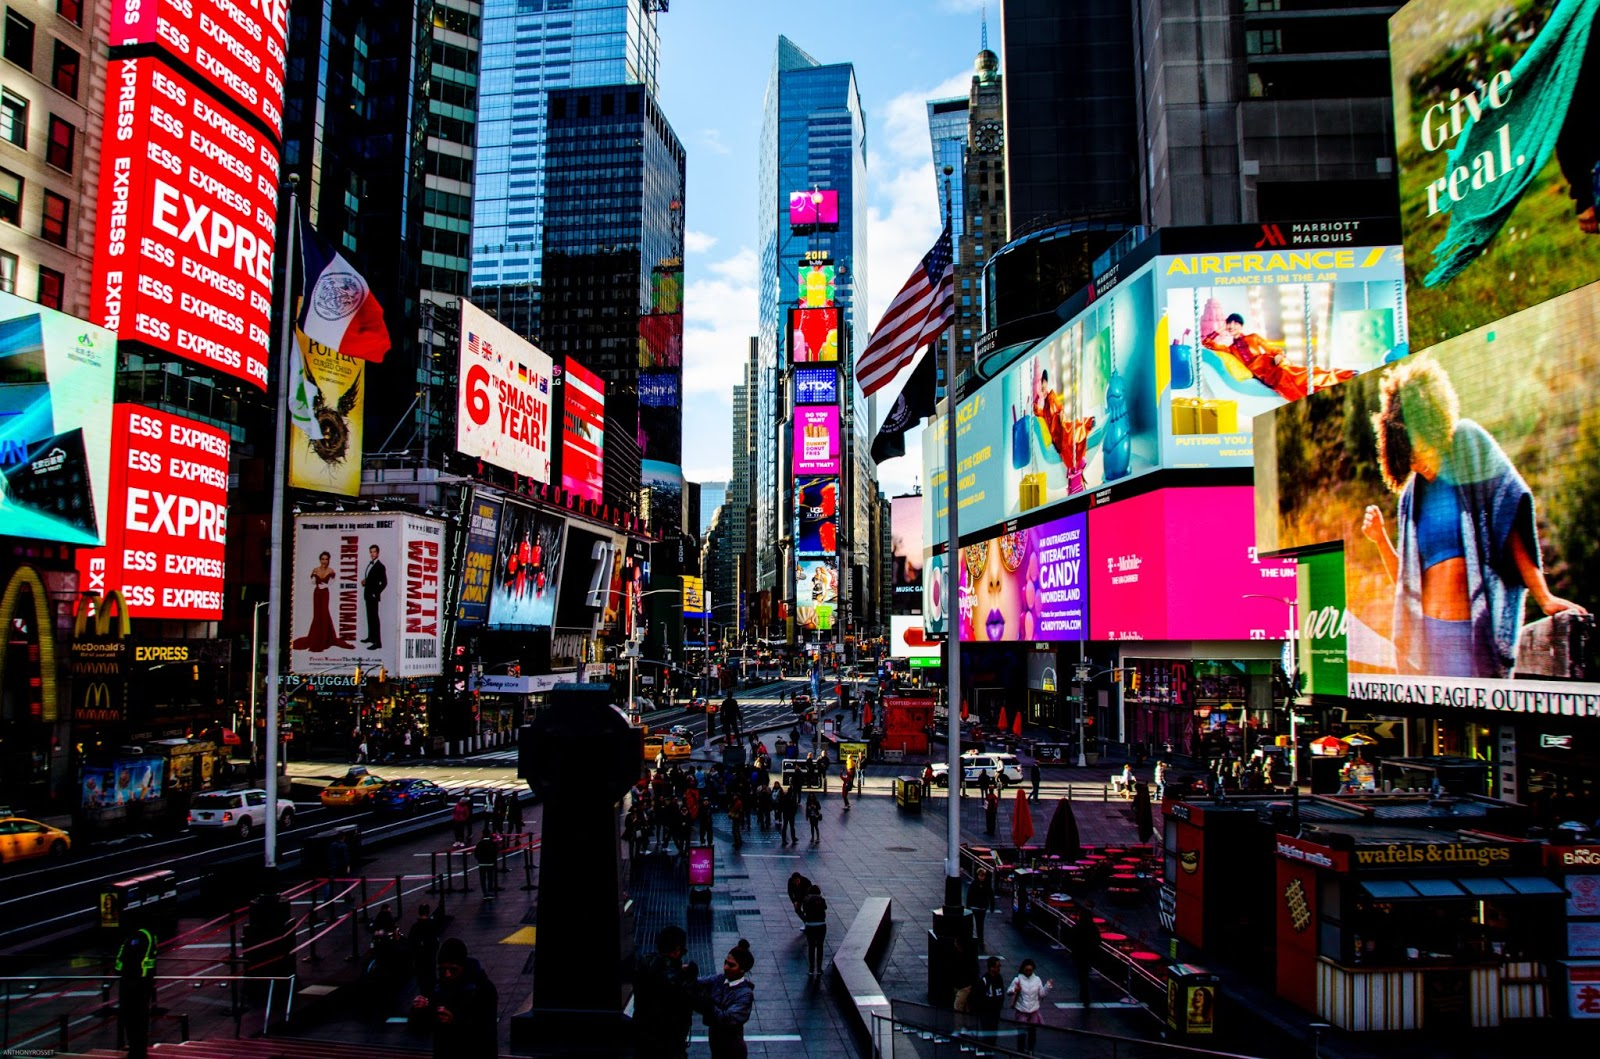 Digital advertisements line a busy cityscape, showcasing the importance of brand awareness.